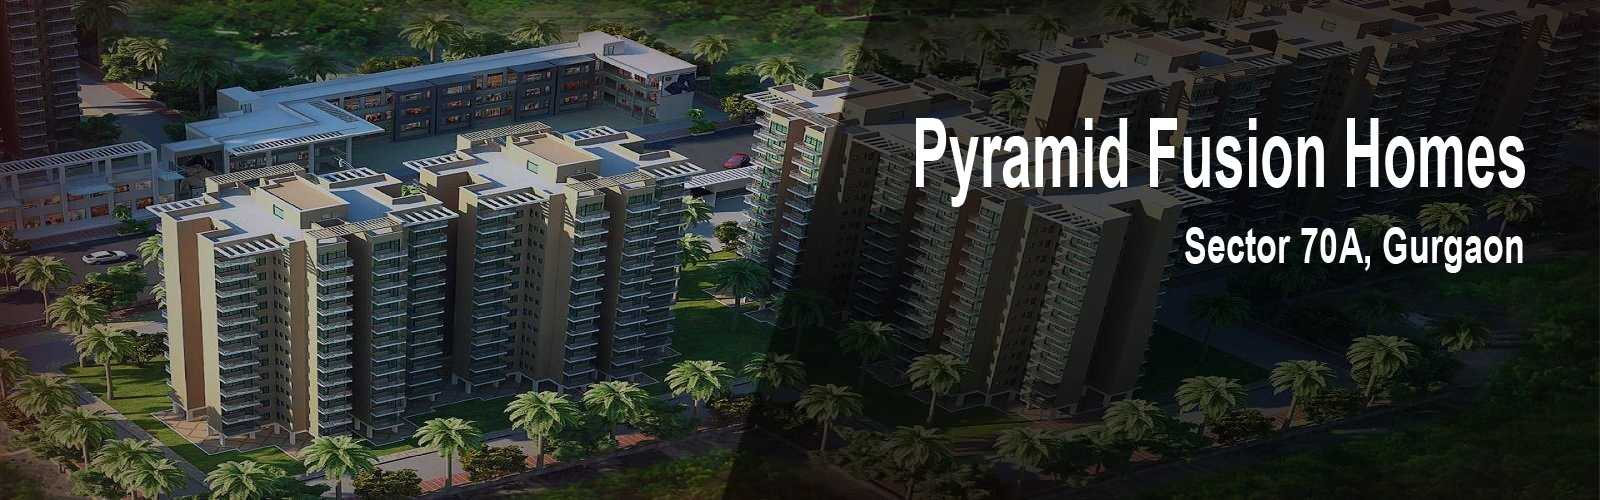 Pyramid Fusion Homes Sector 70A Banner